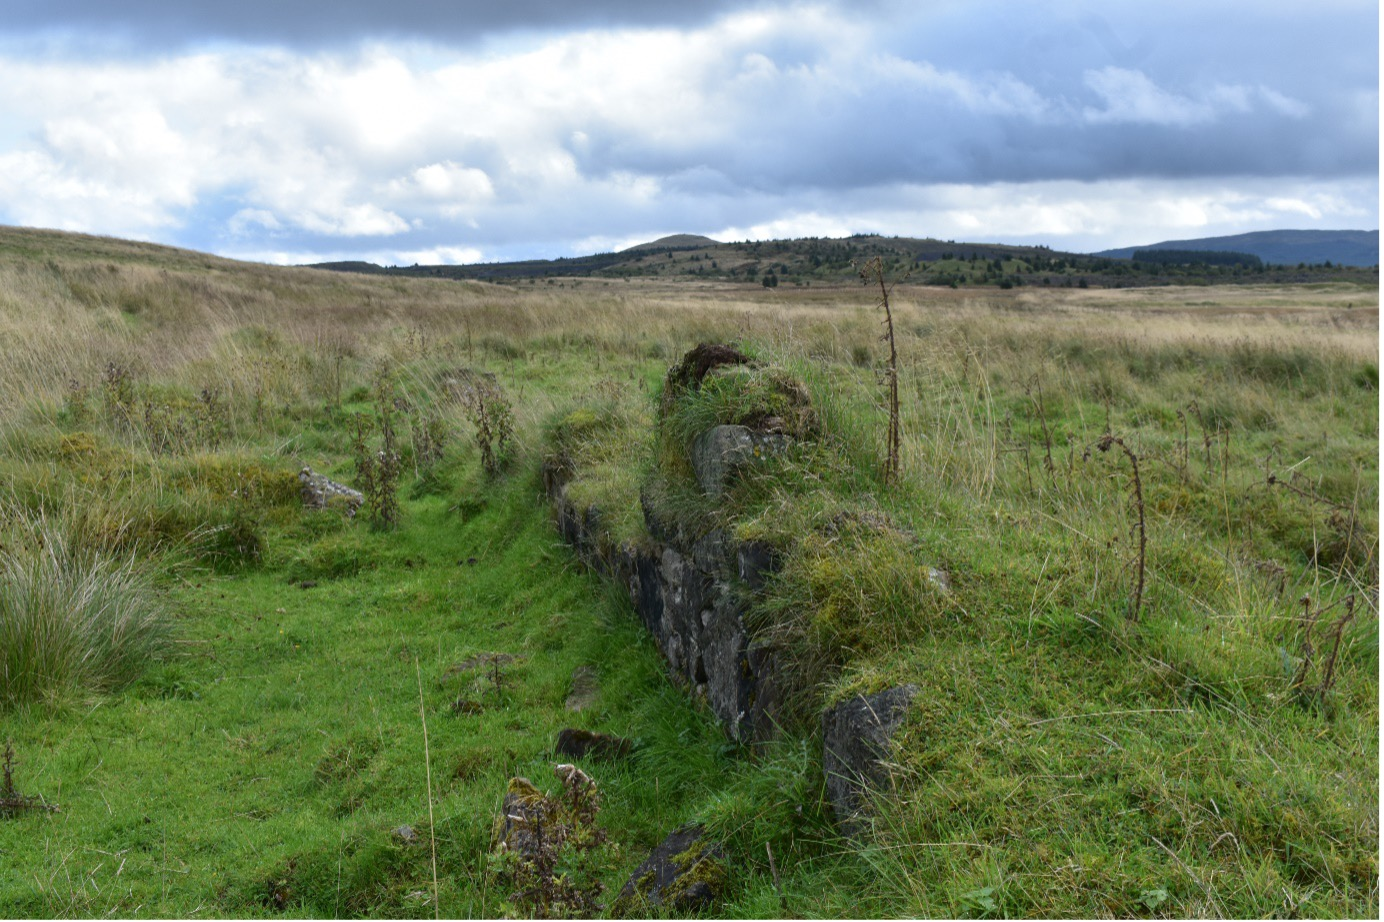 Remains of a miner's row in Benwhat Ayrshire. Shows small wall covered in and surrounded by grass